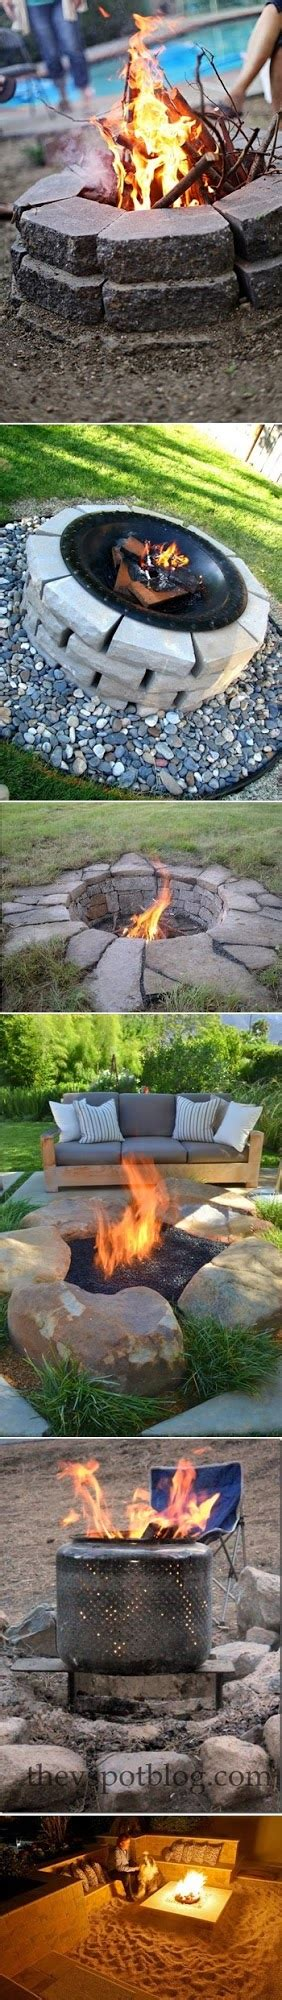 47 diy pit design ideas 47 diy pit design ideas diy craft projects